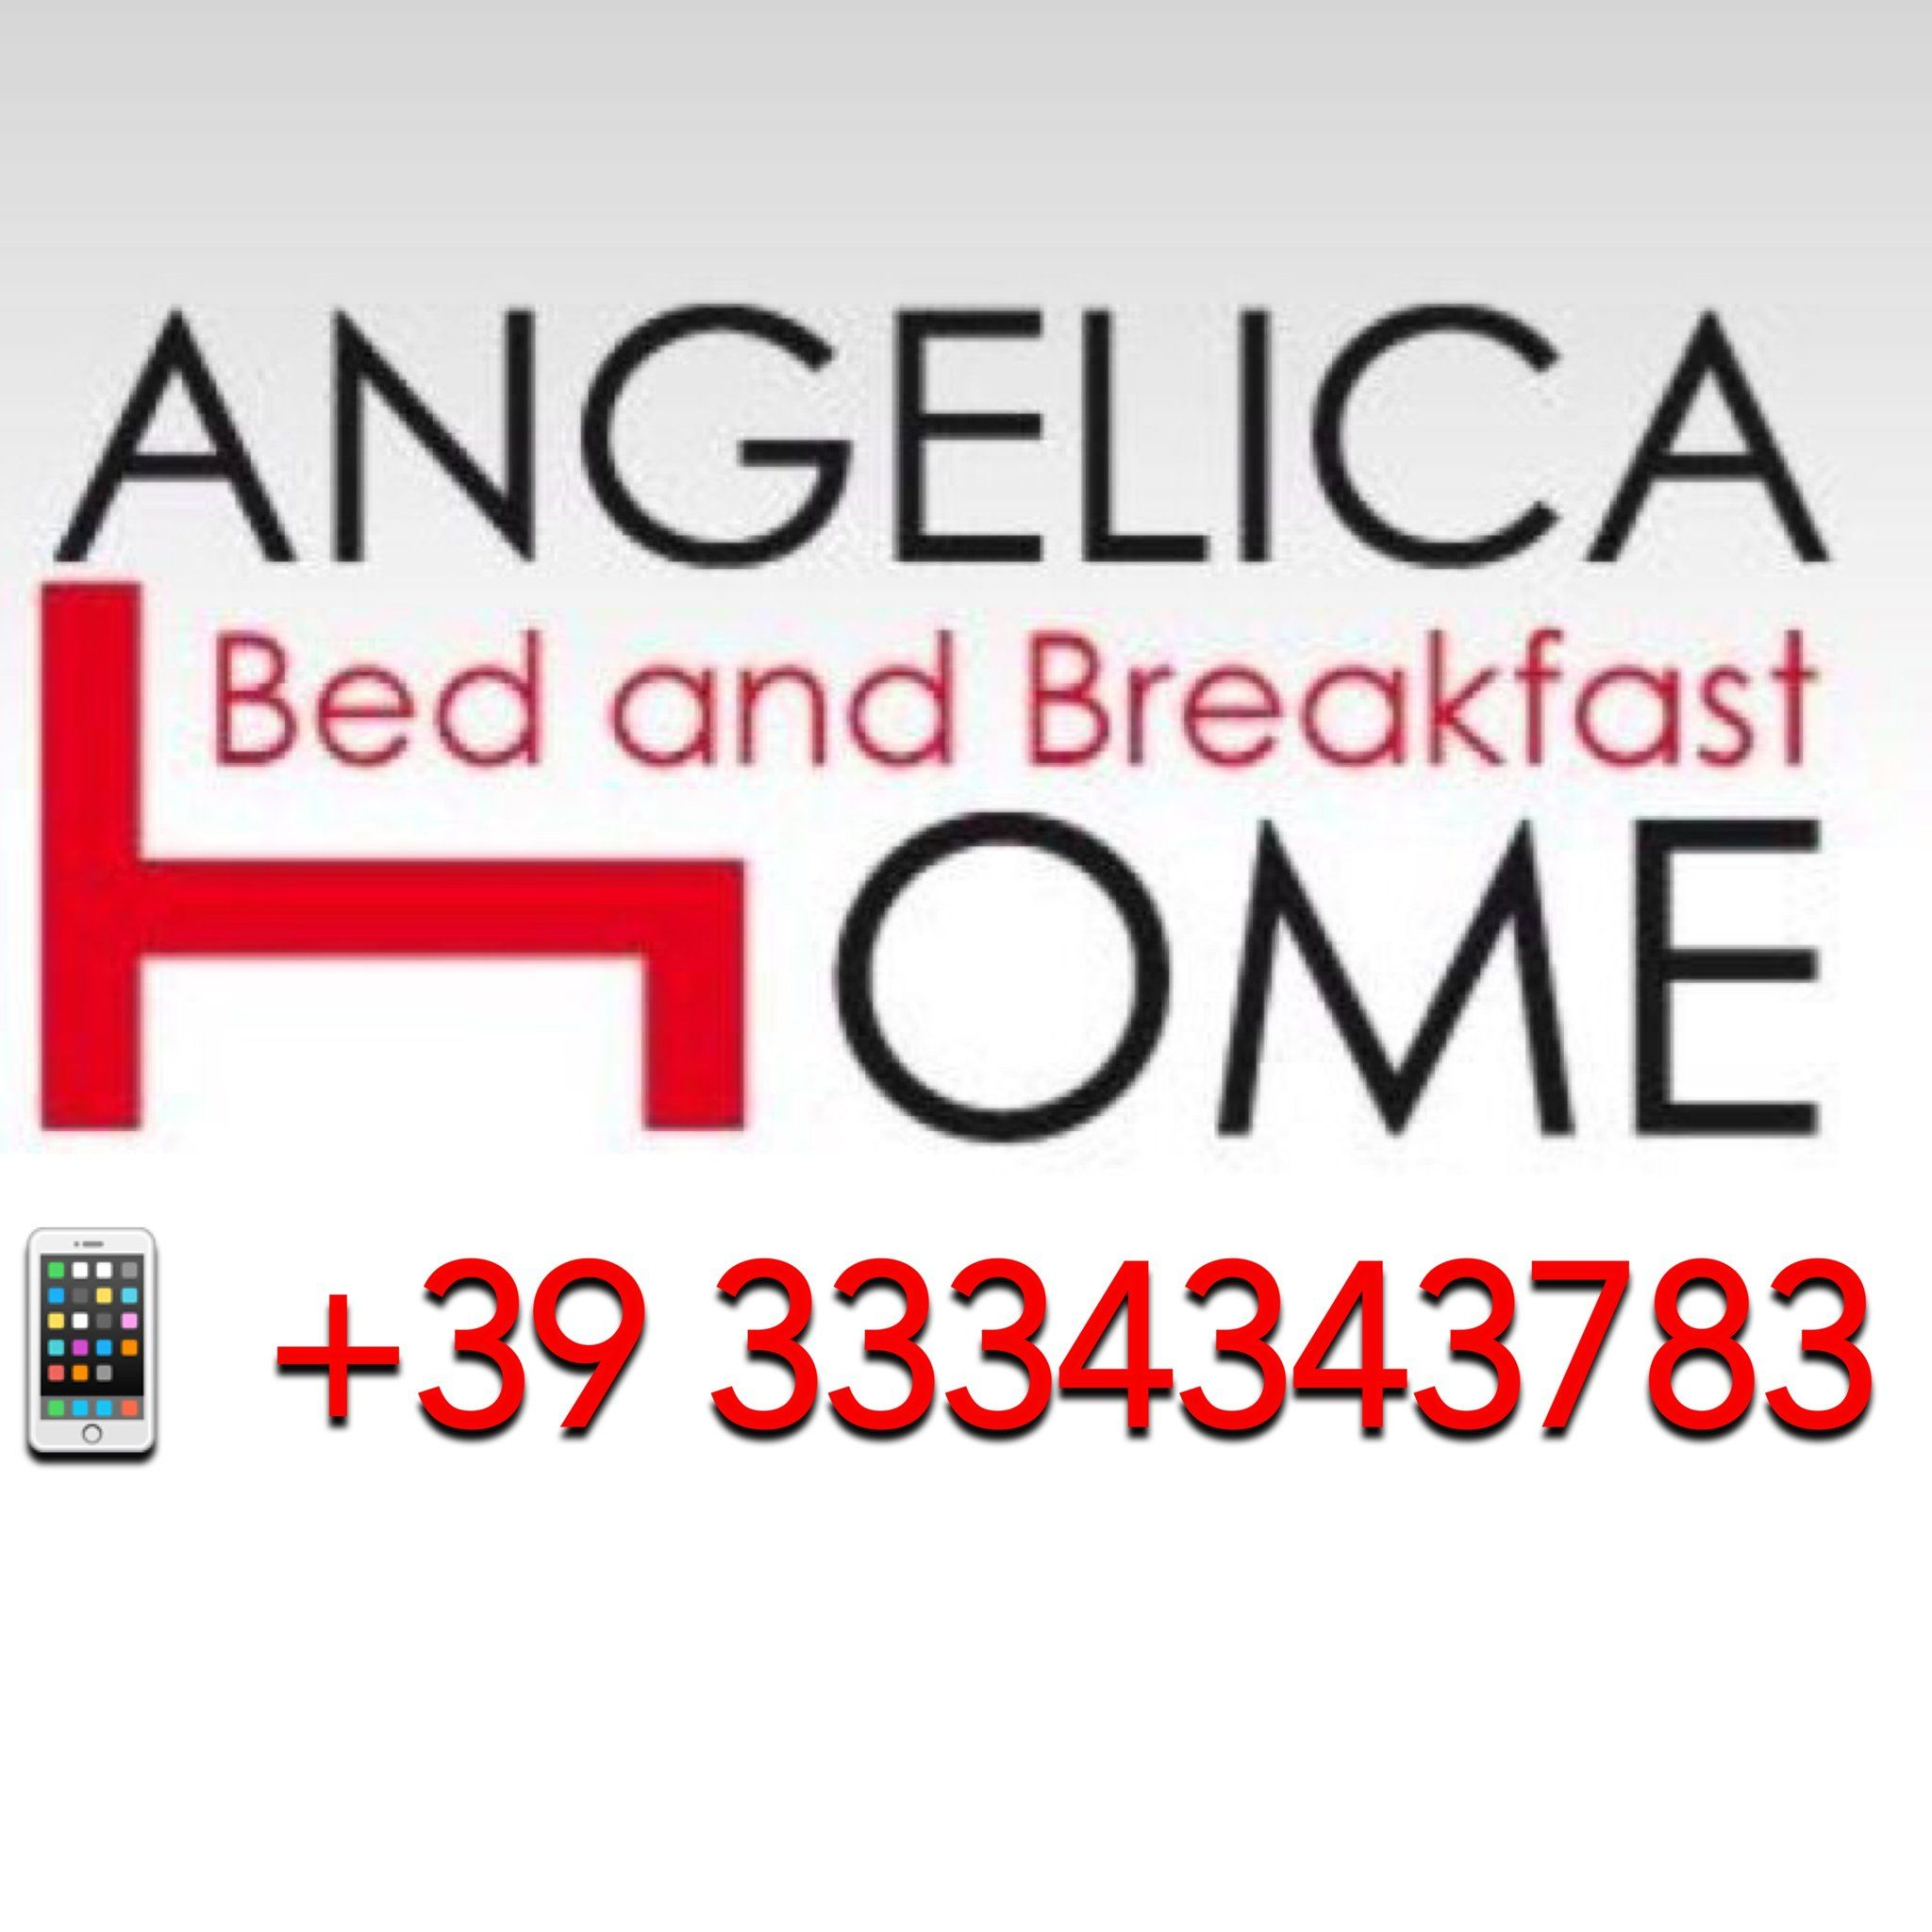 AngelicaHome Bed & Breakfast